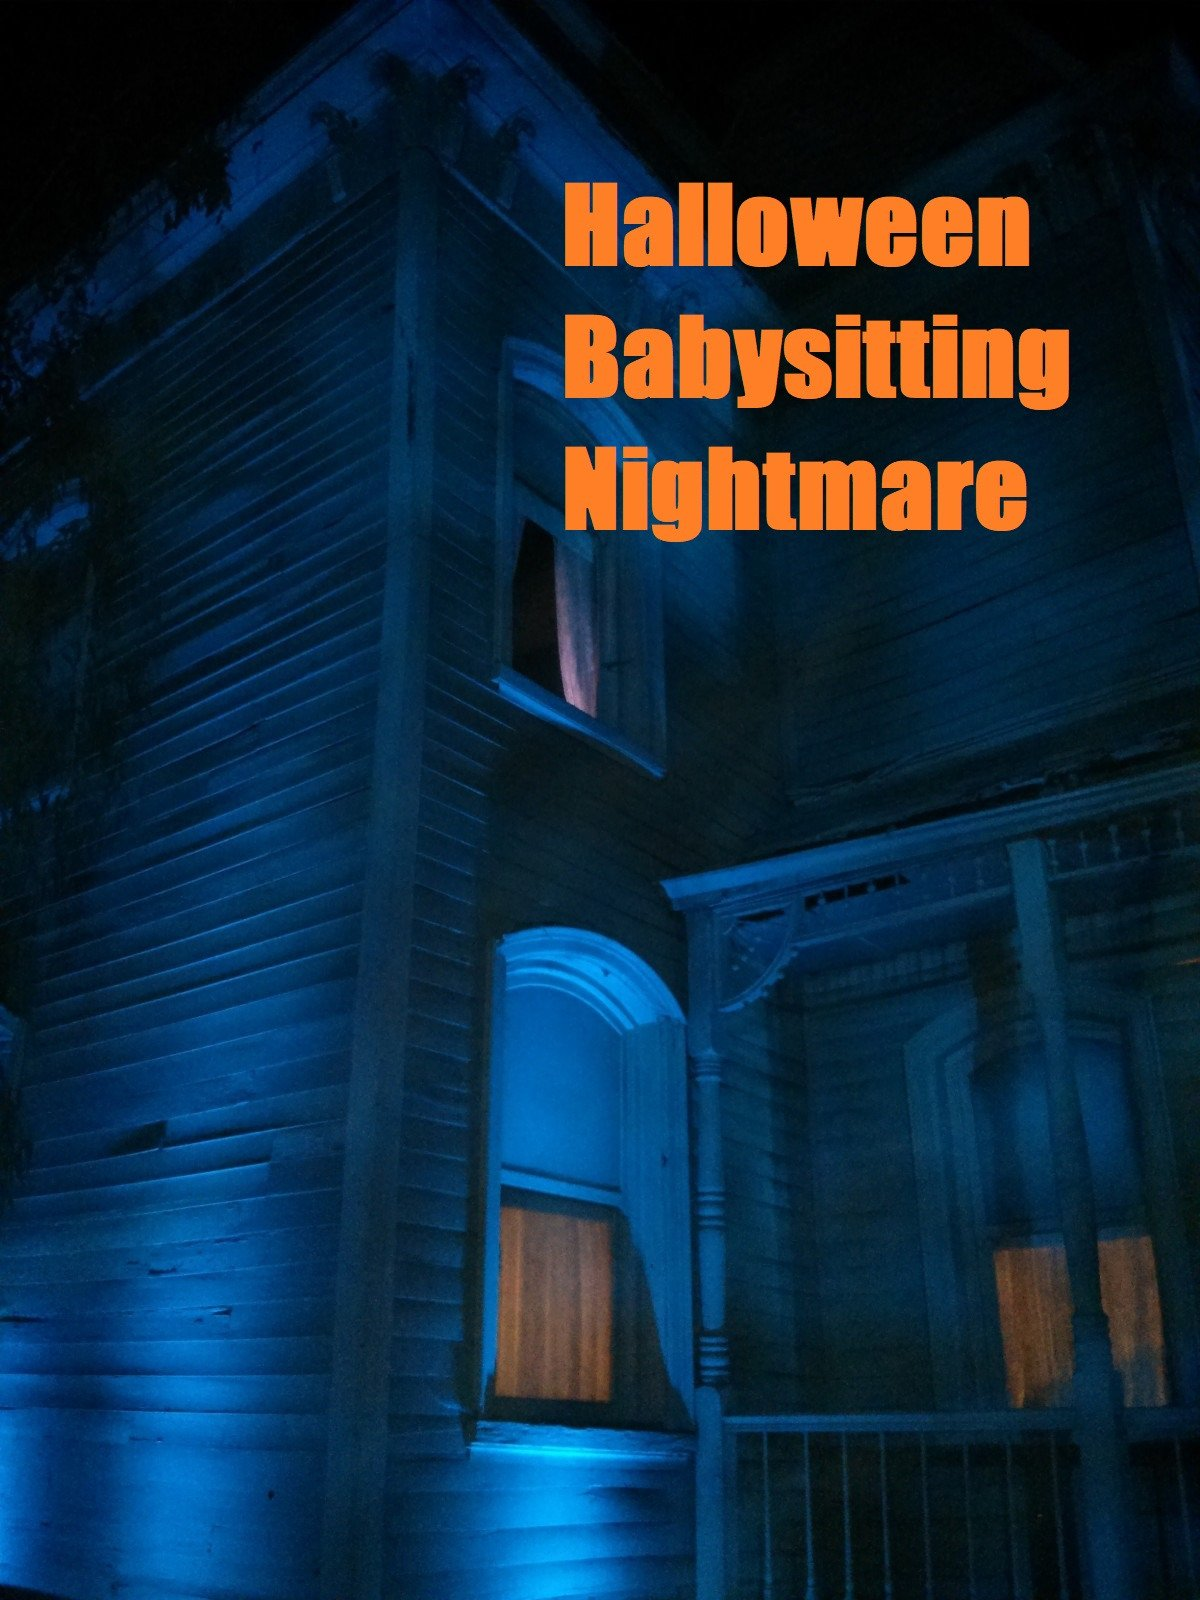 Halloween Babysitting Nightmare